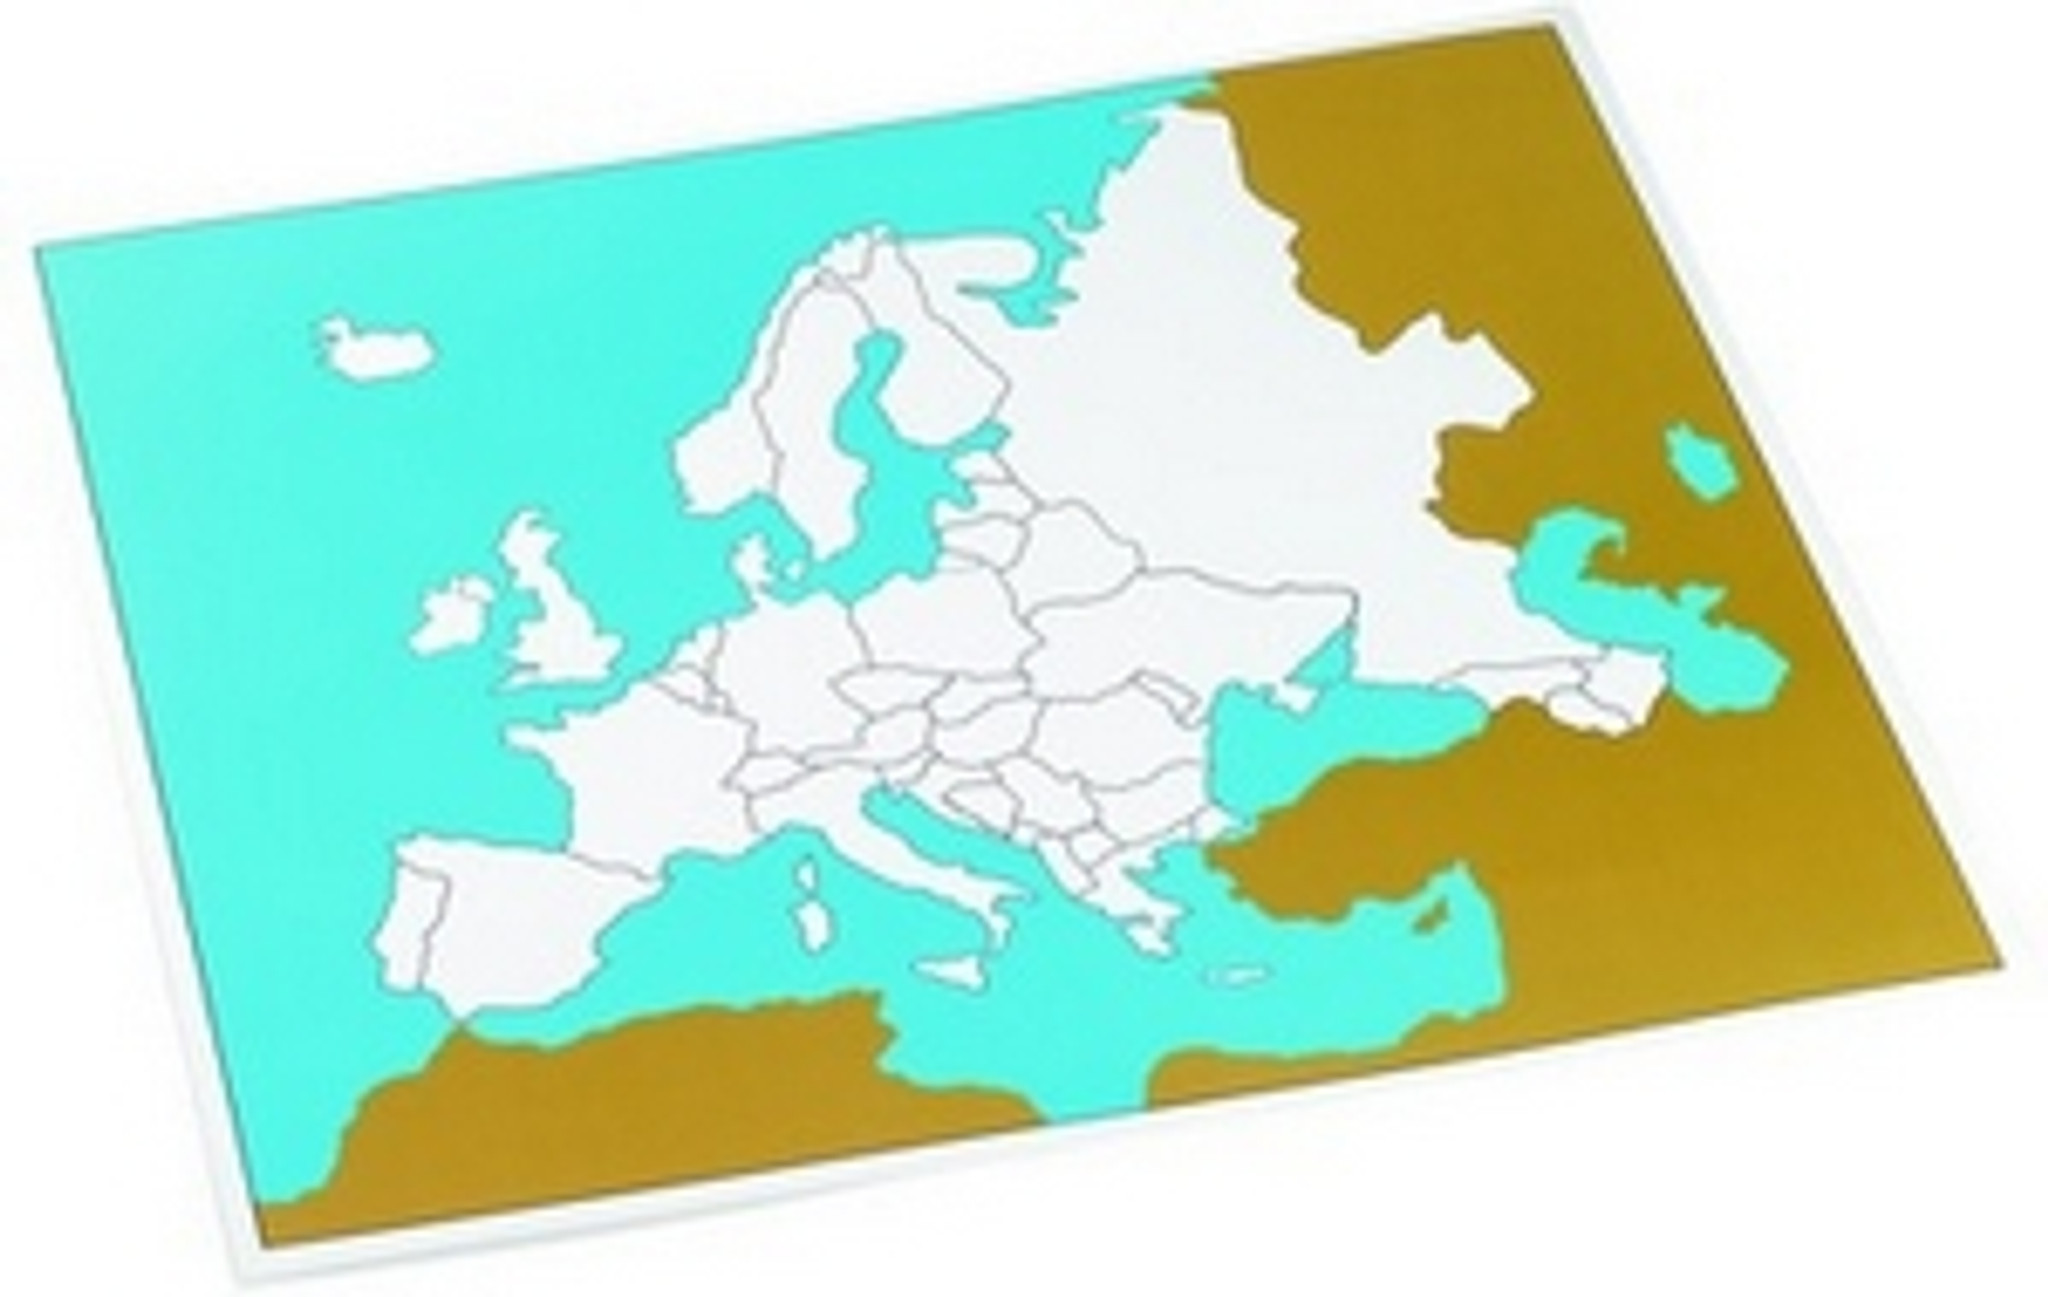 Control map of Europe unlabeled